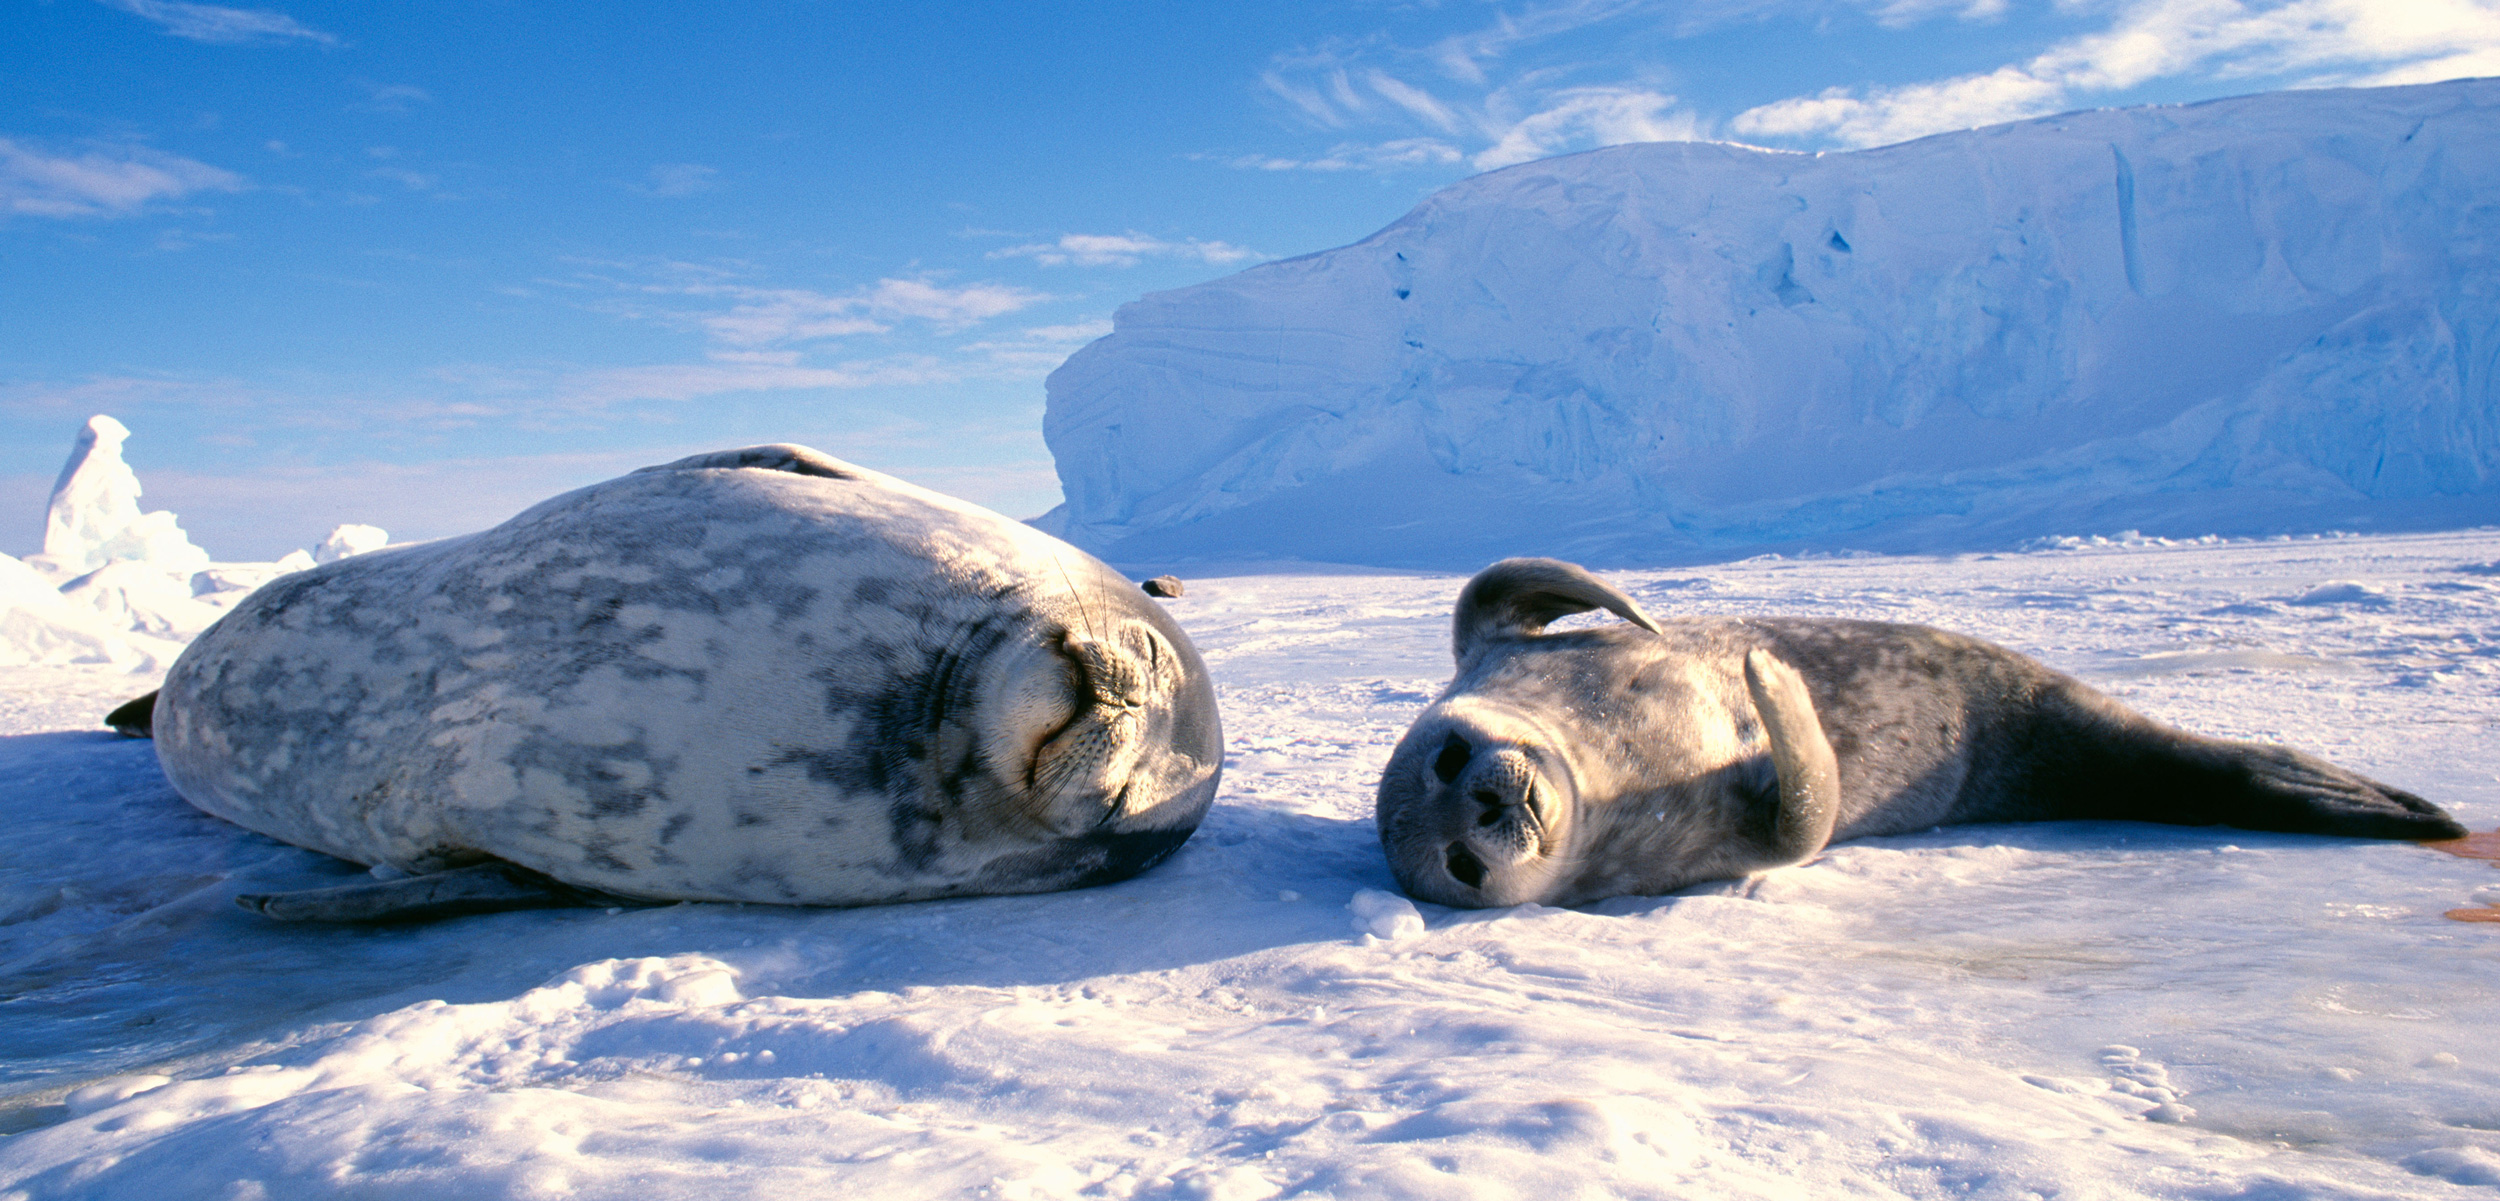 A pair of Weddell seals relax on the sea ice overlaying the Weddell Sea in Antarctica. Photo by David Tipling Photo Library/Alamy Stock Photo